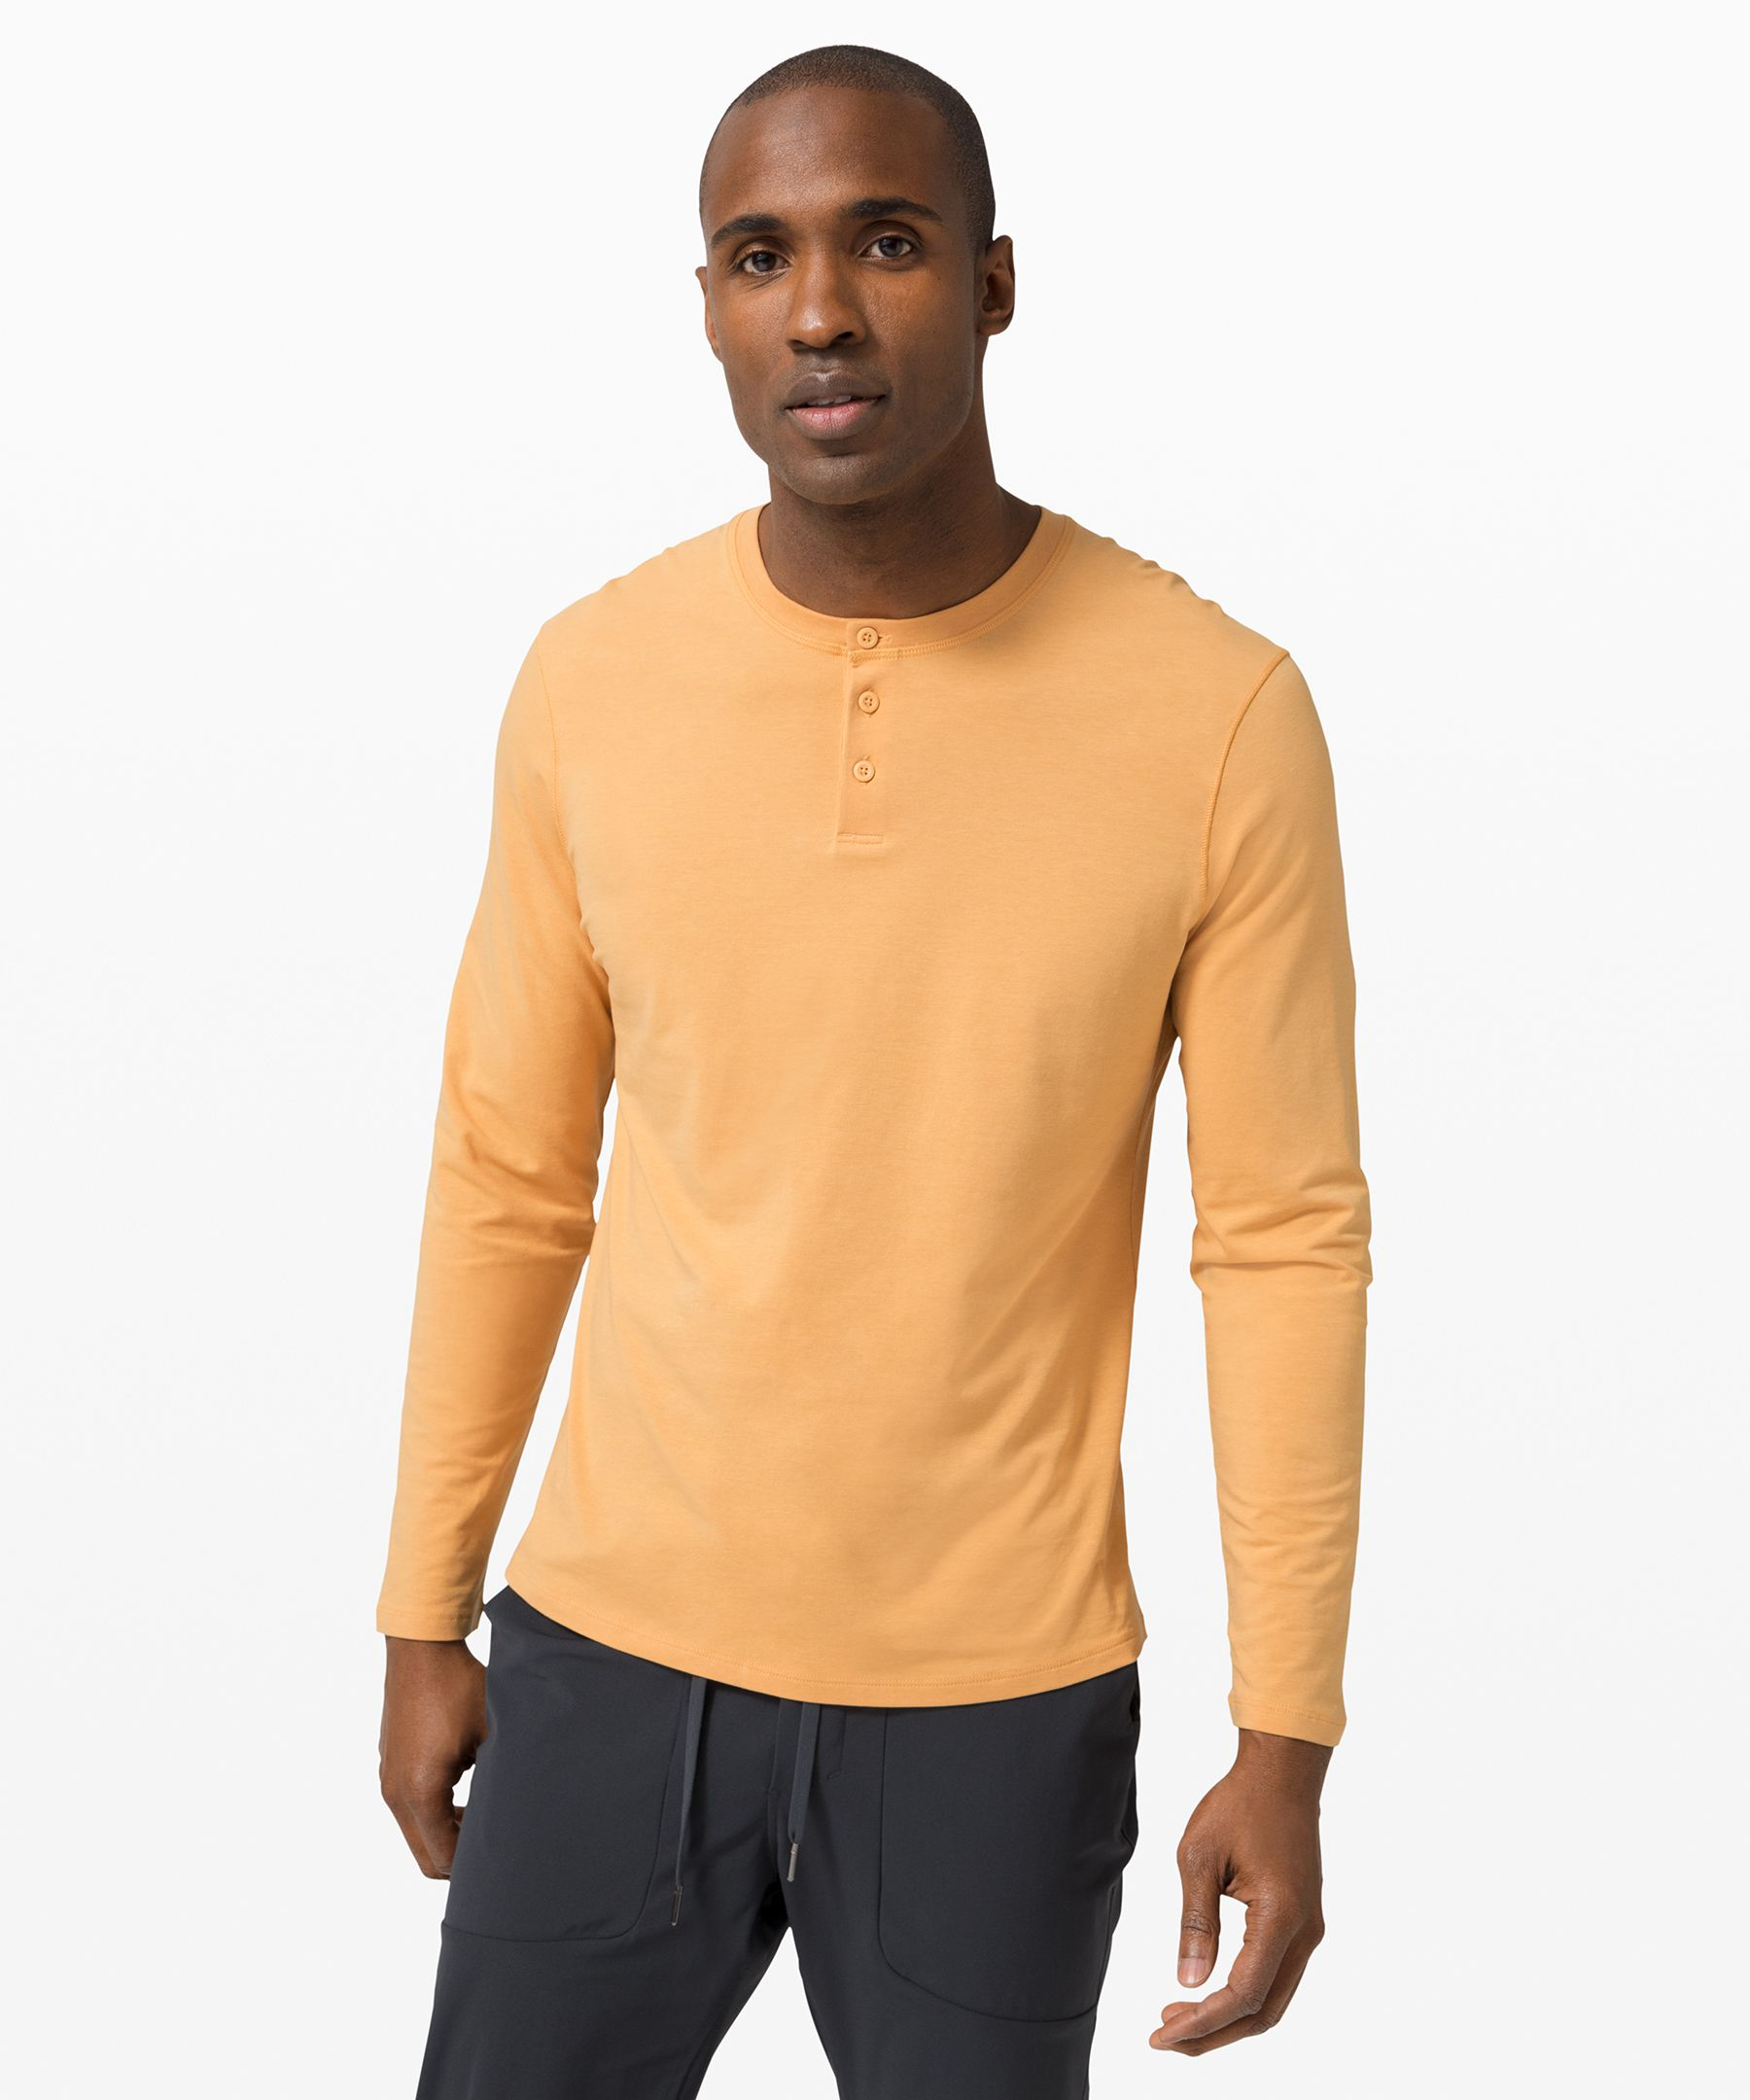 This soft, lightweight  long-sleeve henley is built  for ultimate everyday comfort.